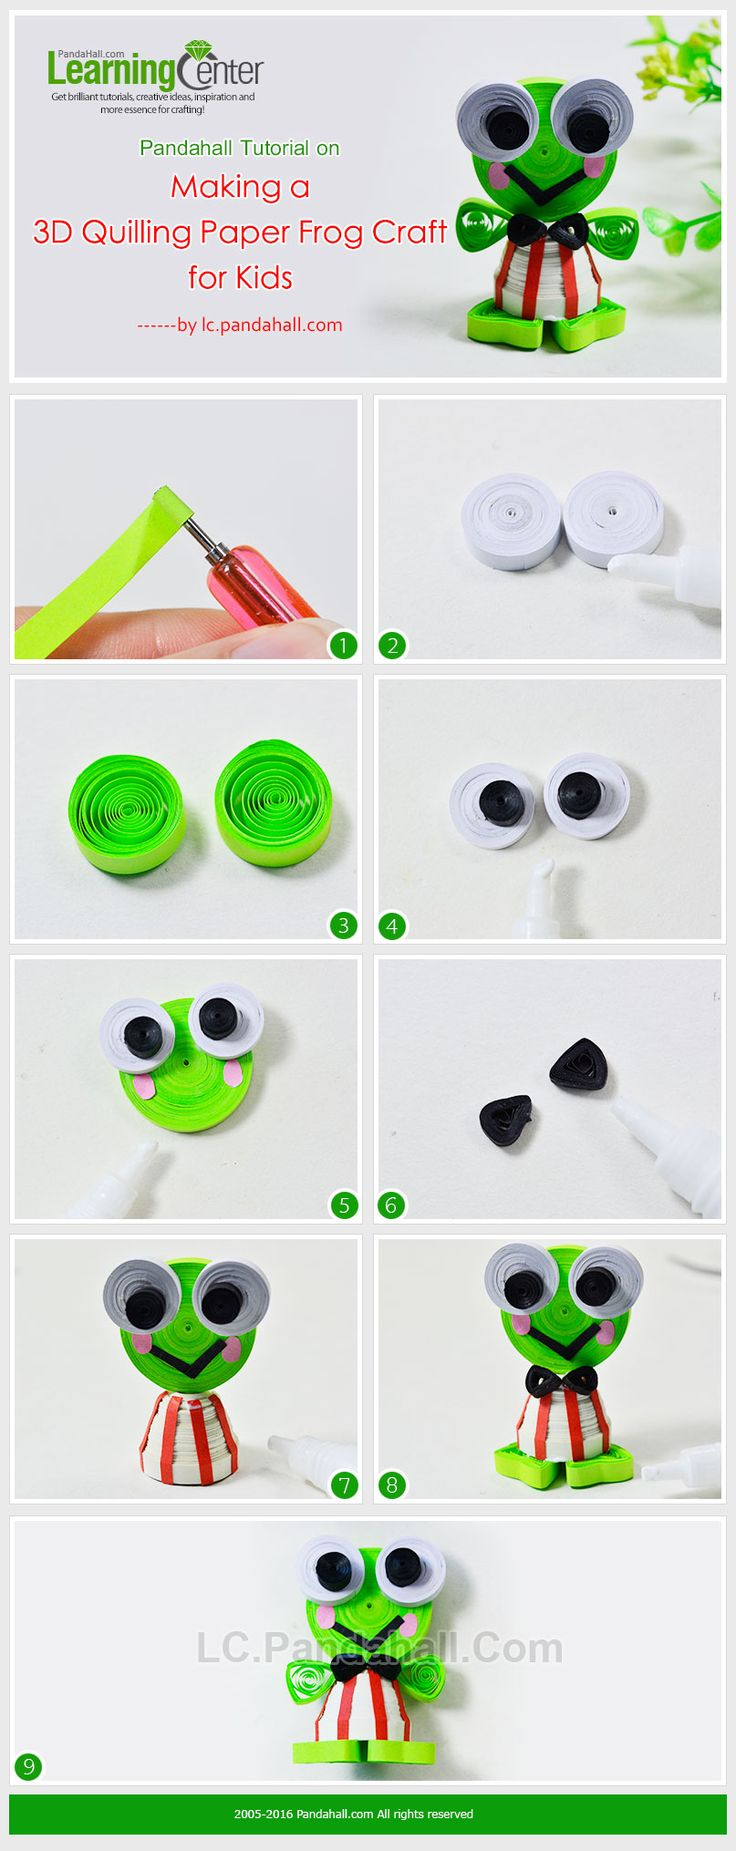 Pandahall Tutorial on Making a 3D Quilling Paper Frog Craft for Kids